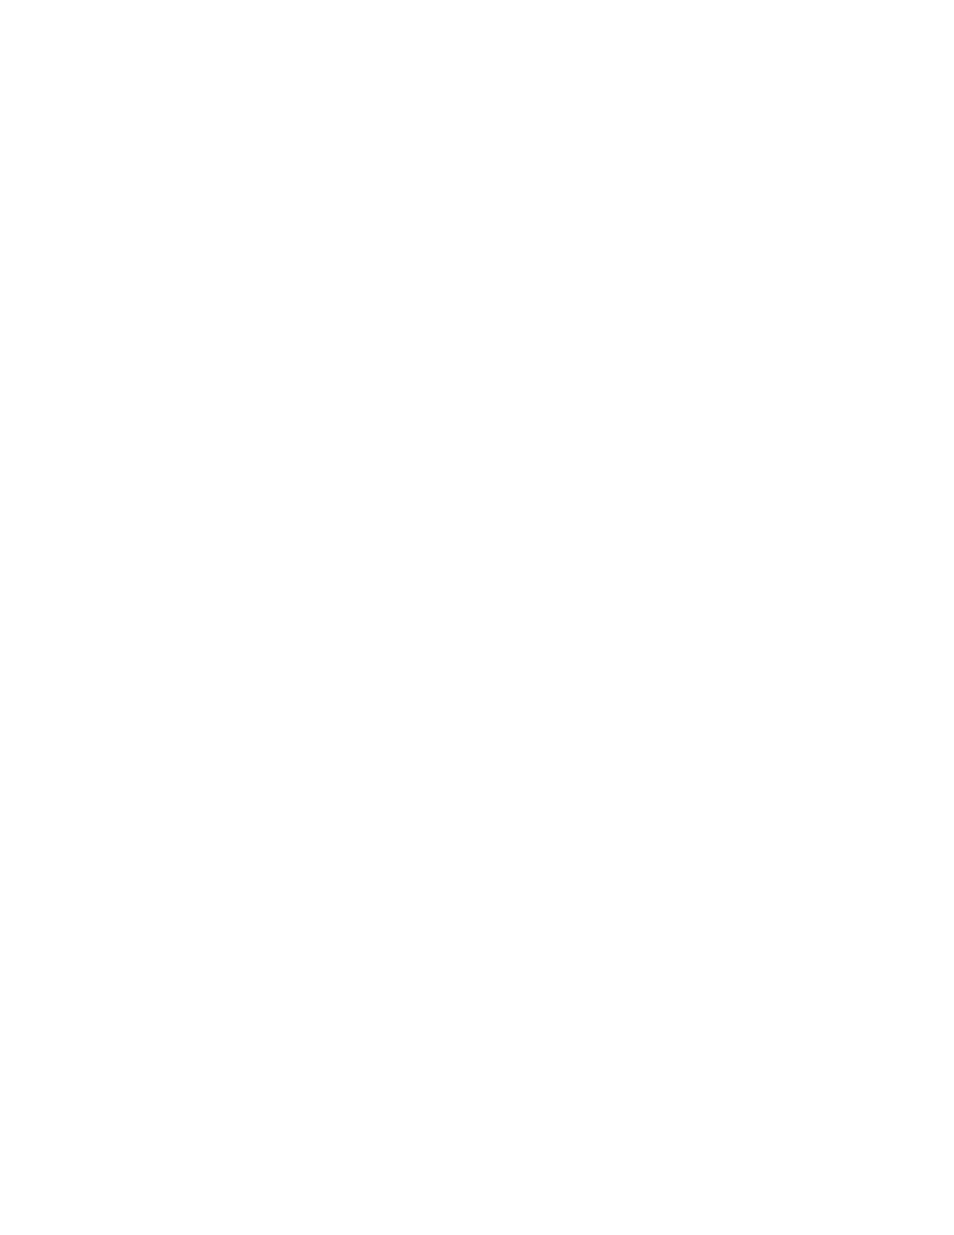 Warranty, What is covered, Who is covered   Life Fitness